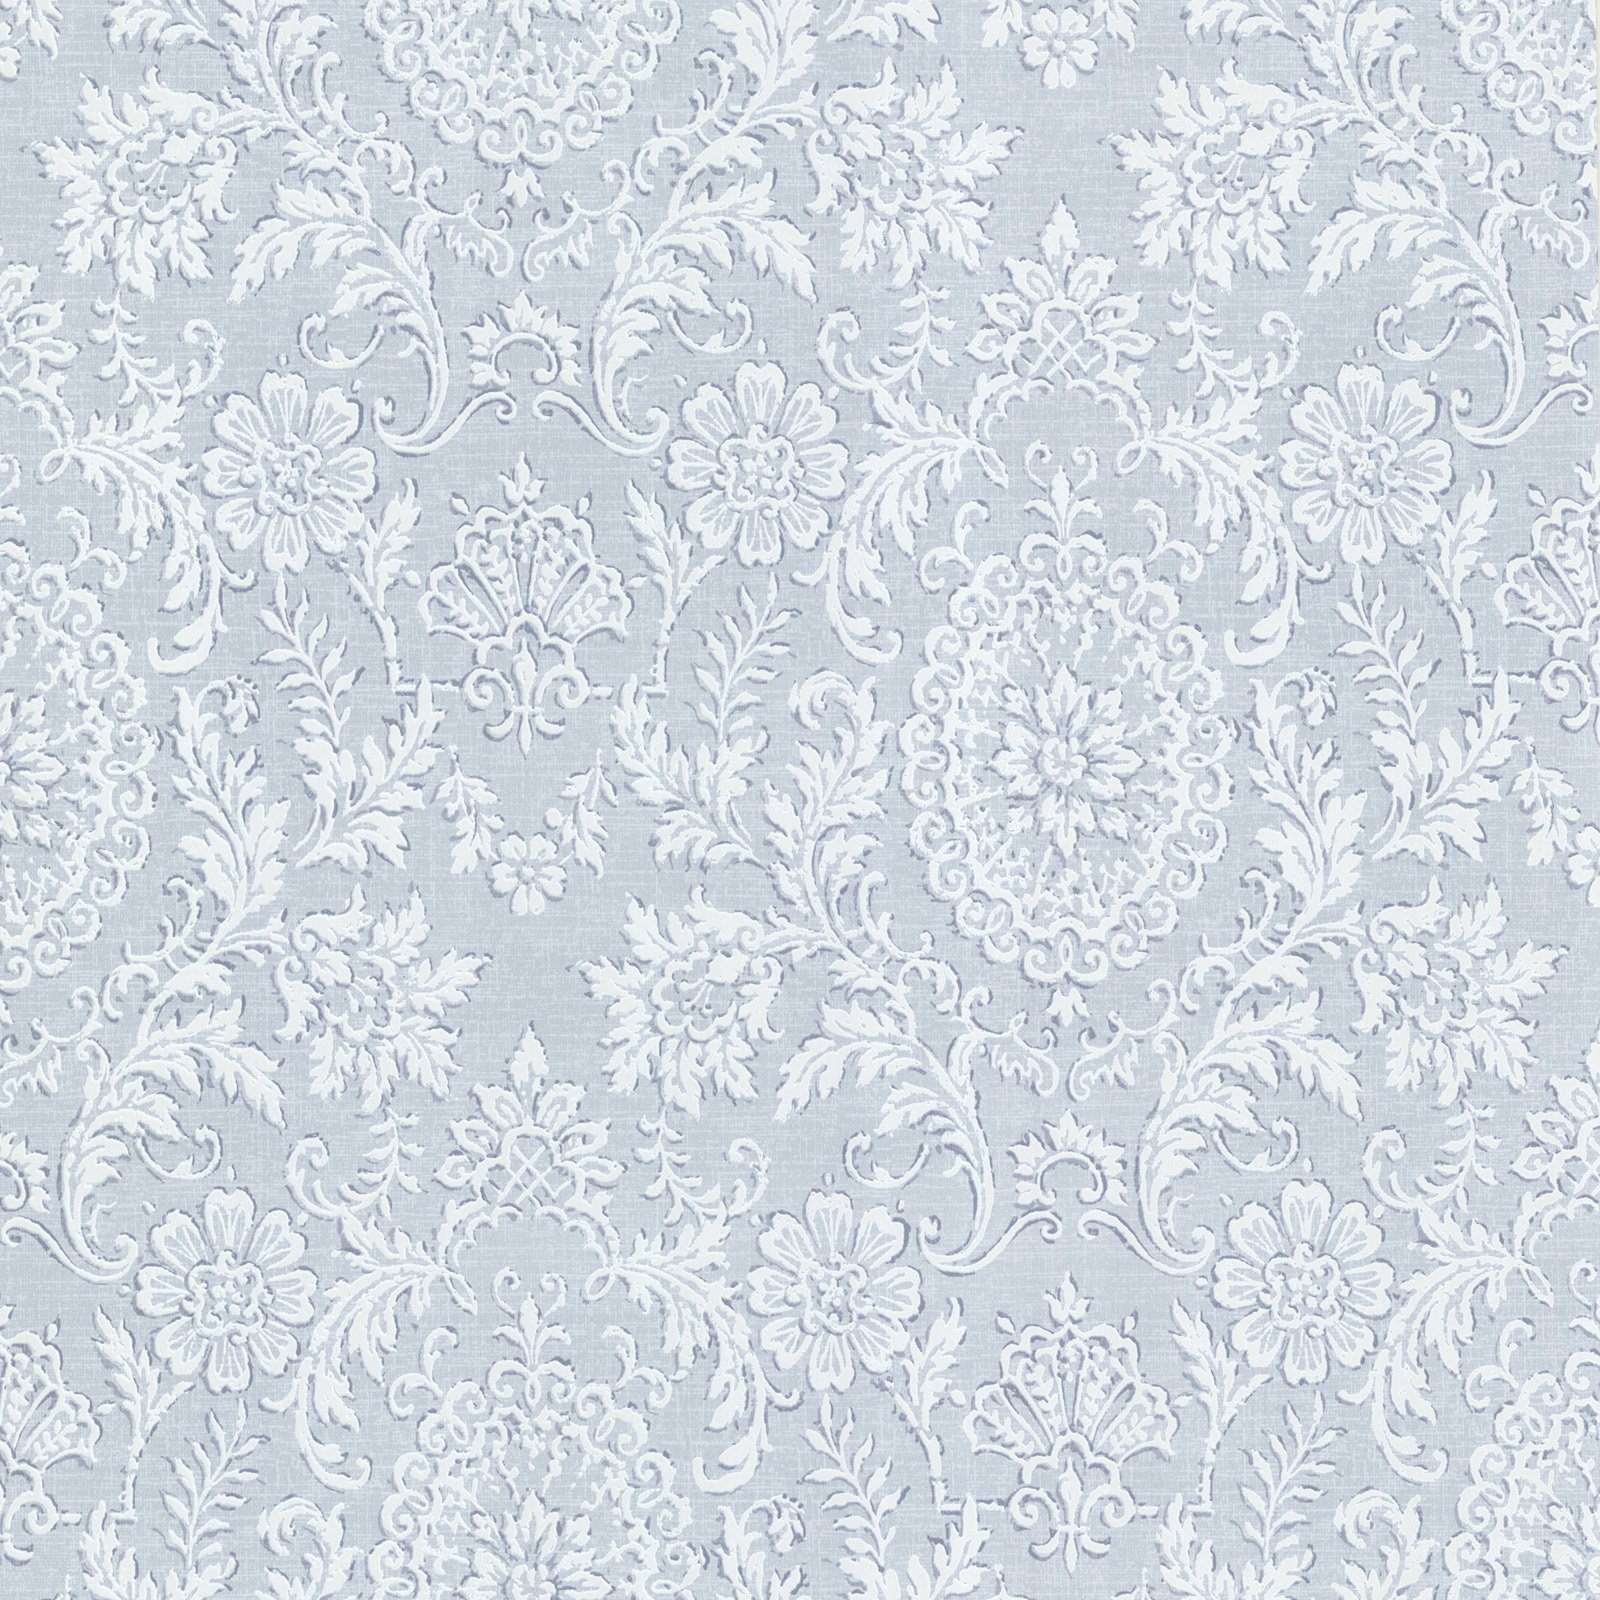 Beacon House Ornament Damask Motif Wallpaper Blue - 302-66888